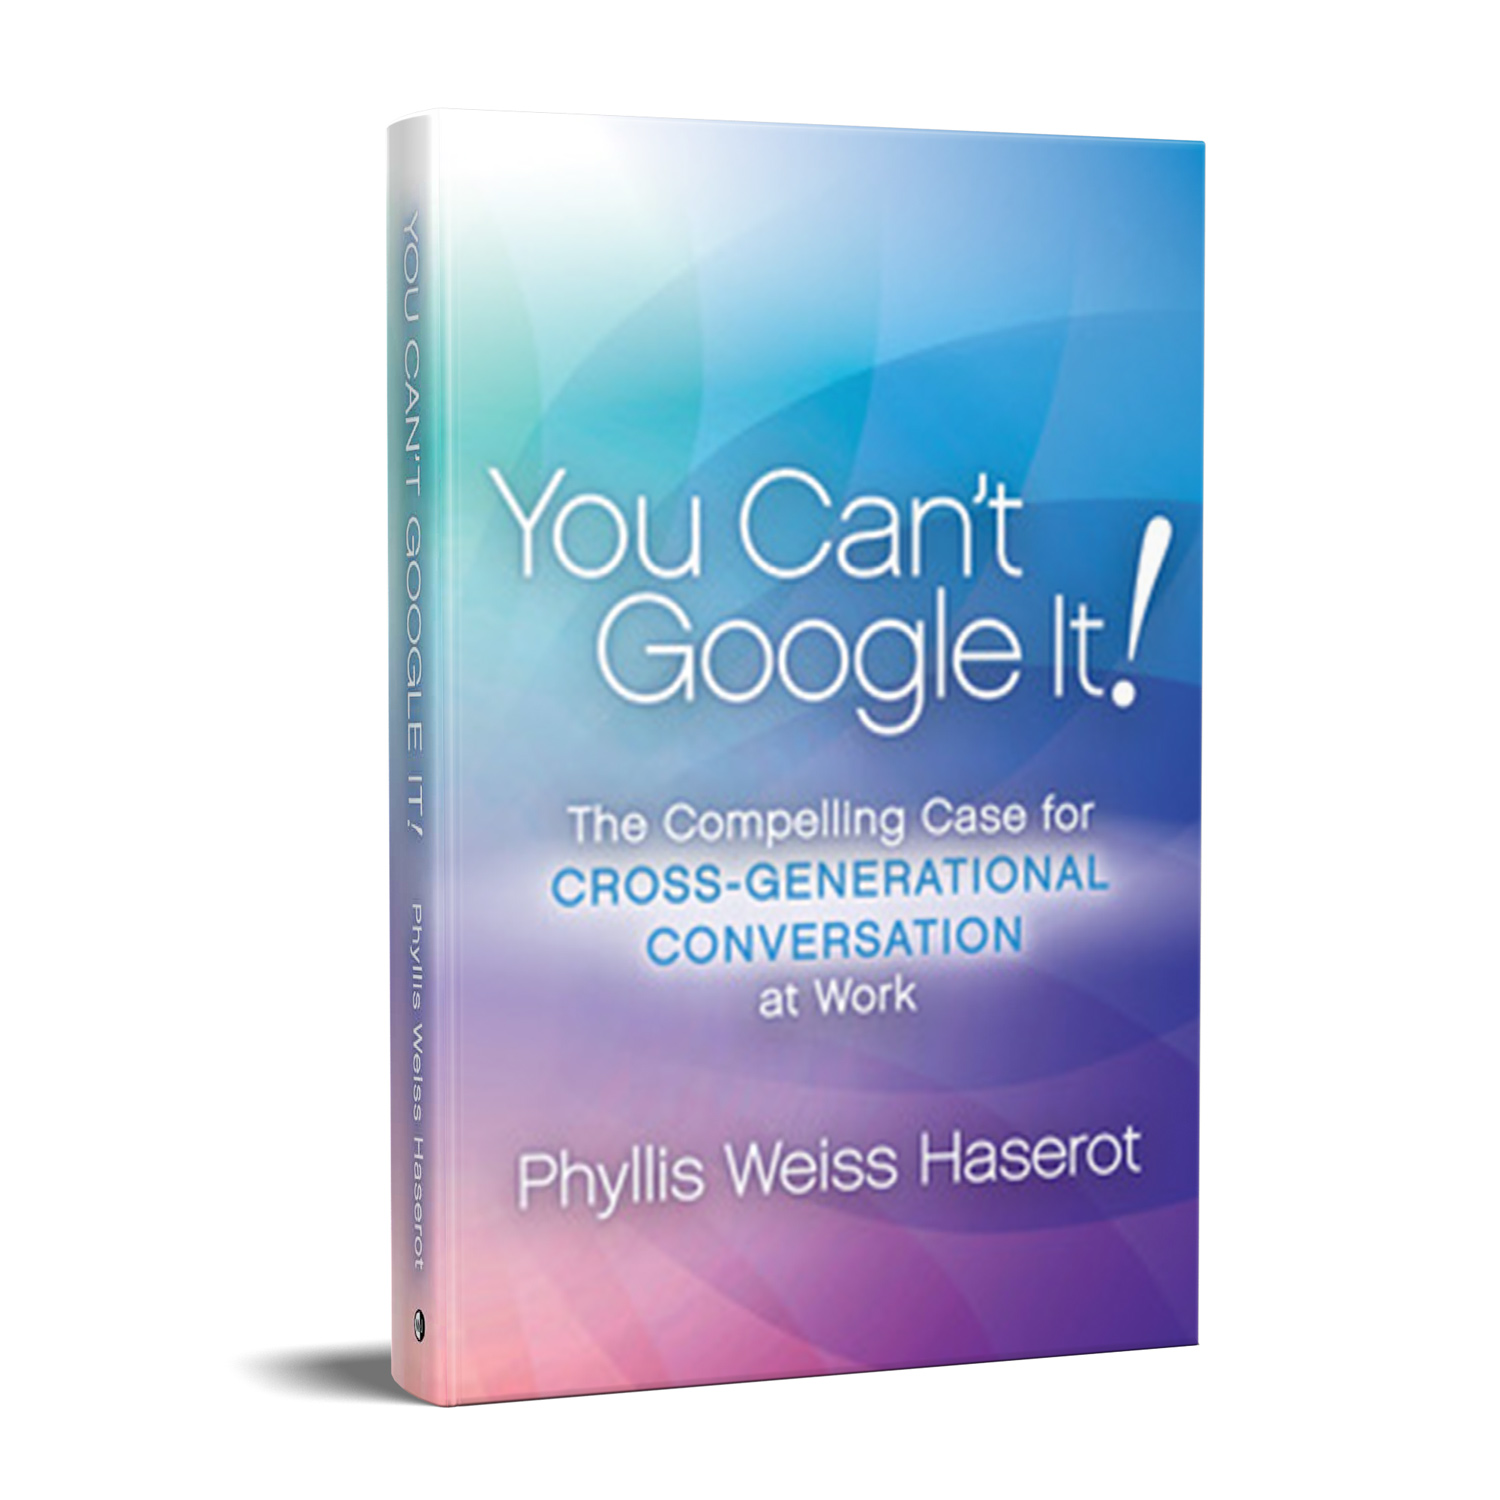 You-Can't-Google-it!-paperback.jpg